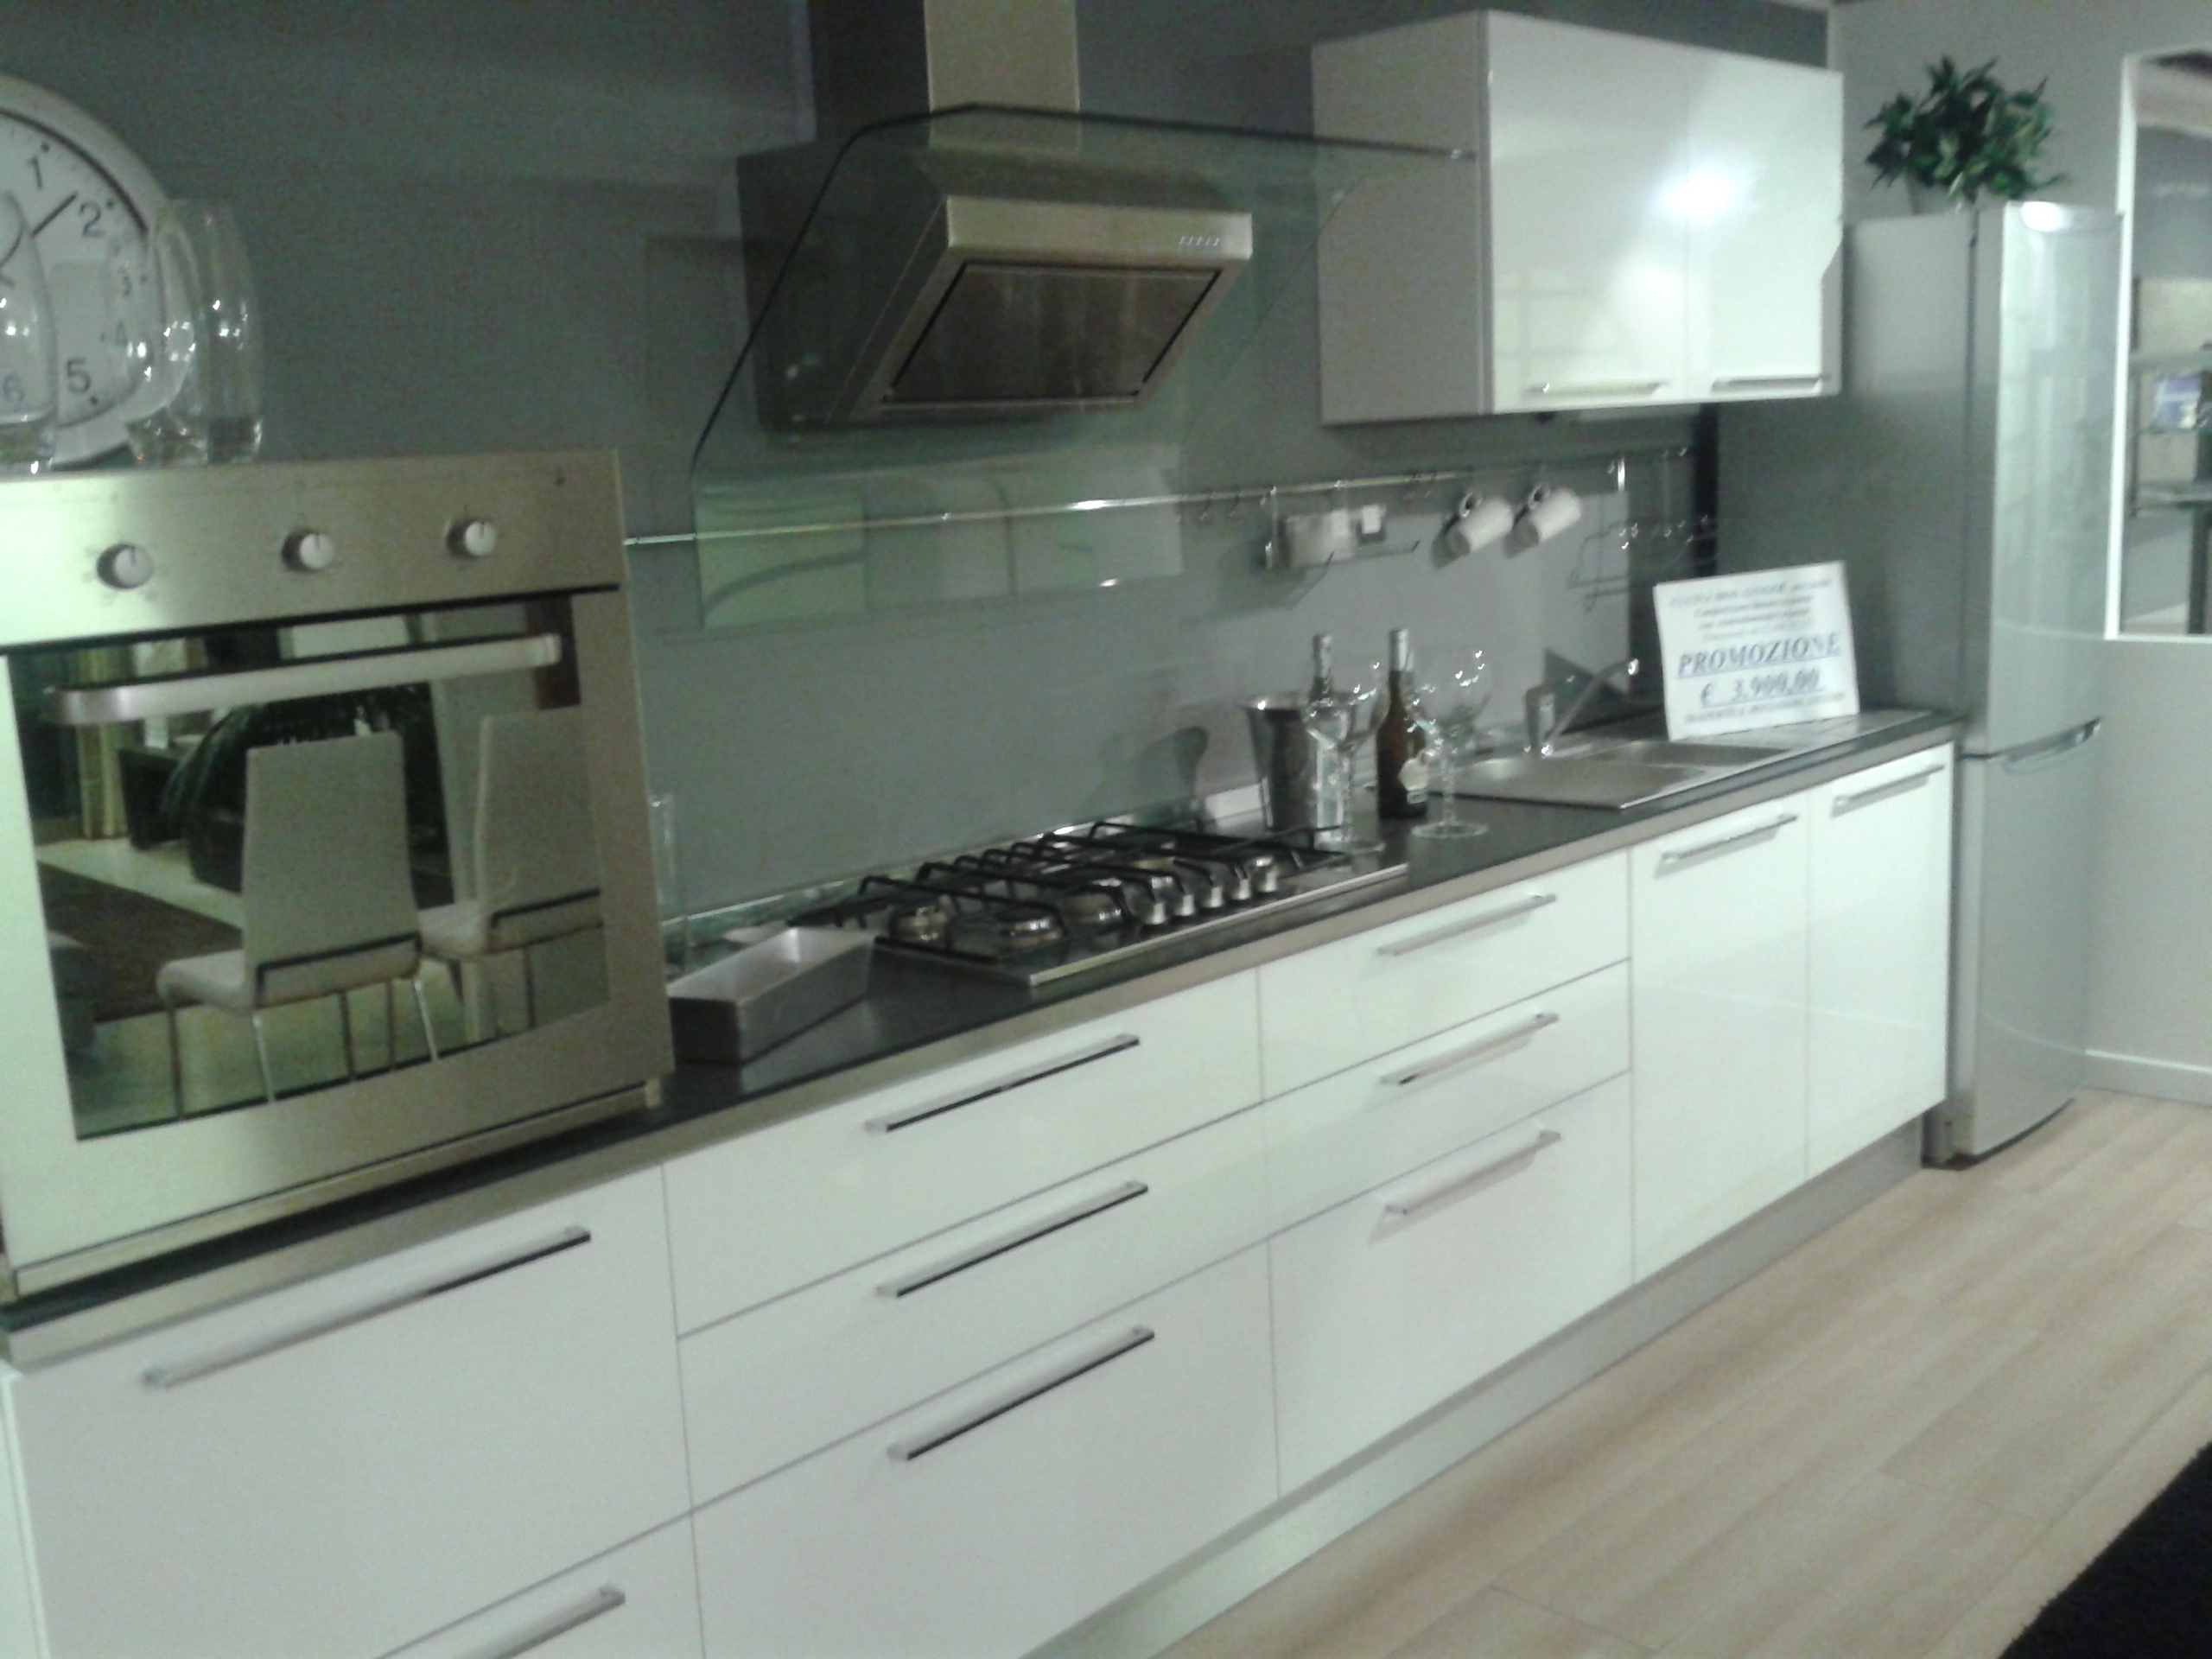 Cucina Veneta Cucine Modello Prevolution Ginger Plus Disponibile Nei  #597262 2560 1920 Open Space Con Sala Da Pranzo